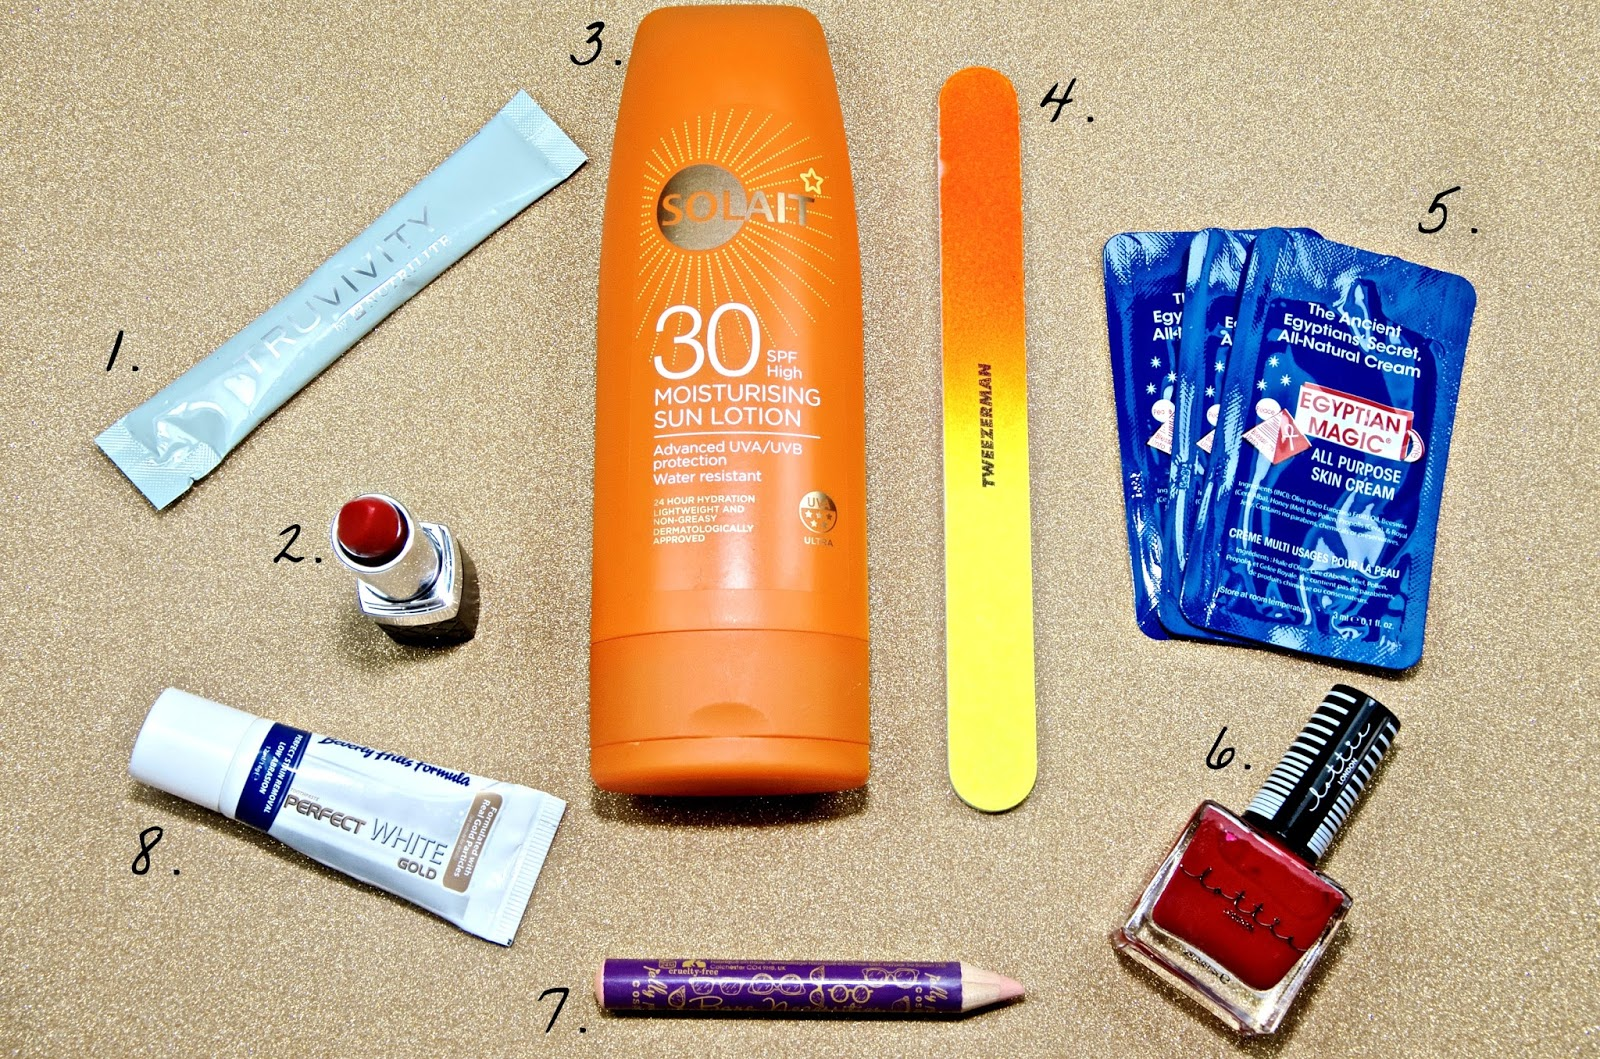 red lipstick, sun cream, toothpaste, nail file, nail polish and beauty products